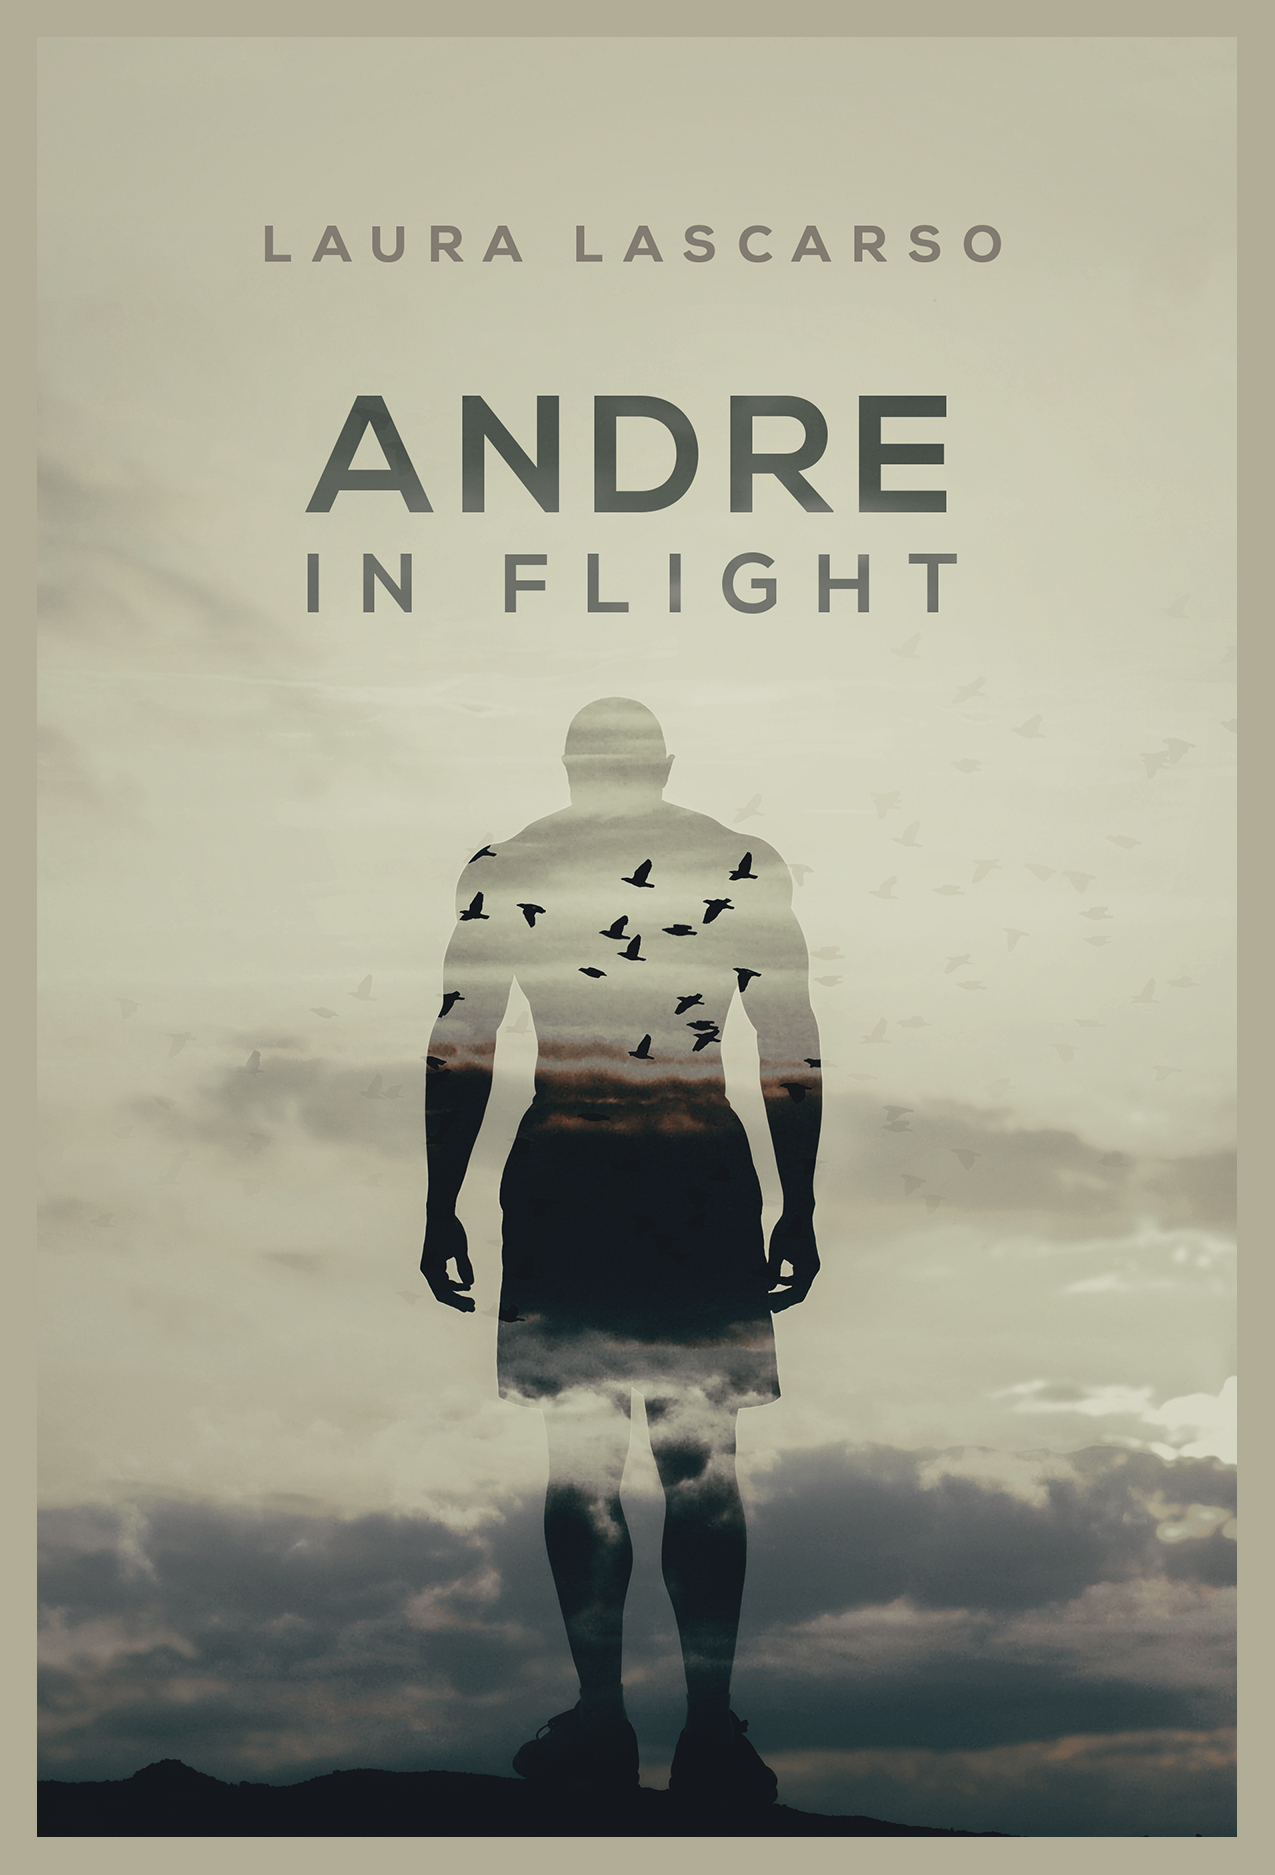 Andre in Flight by Laura Lascarso